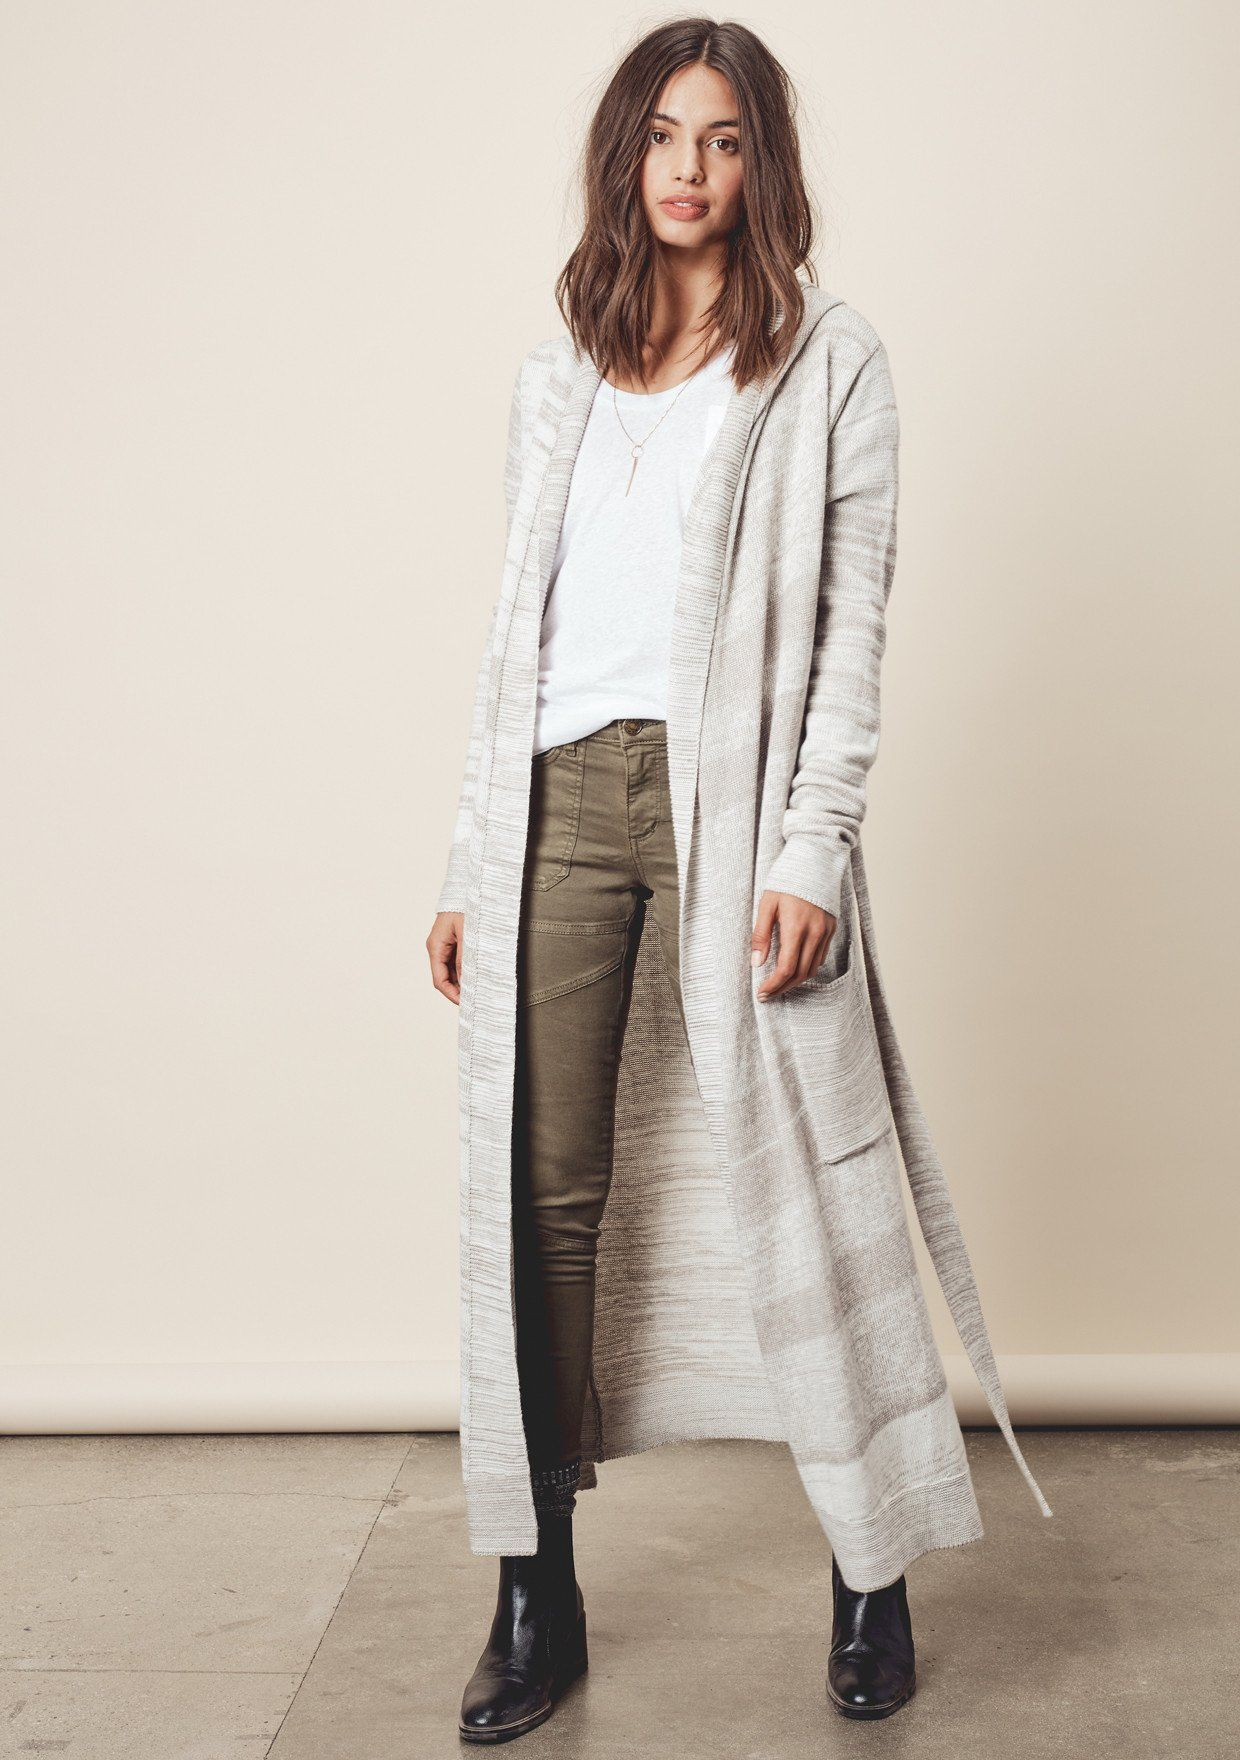 Charlie Duster Chic Light And Cozy Cardigan Outfits Outfit Combinations